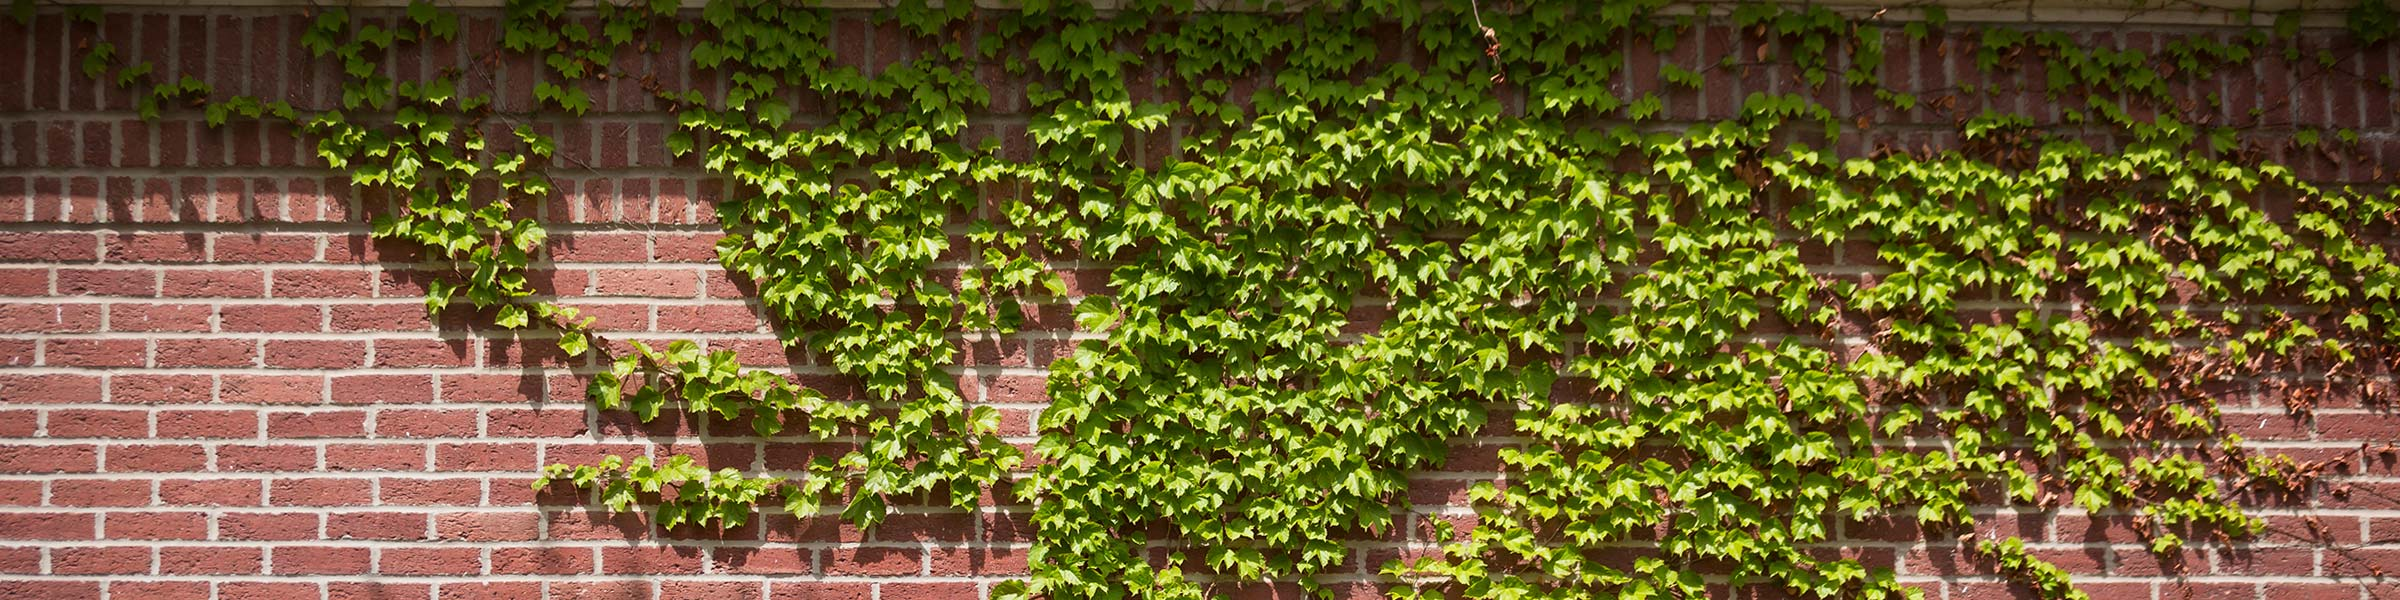 Ivy growing on building at Creighton University in Omaha, Nebraska